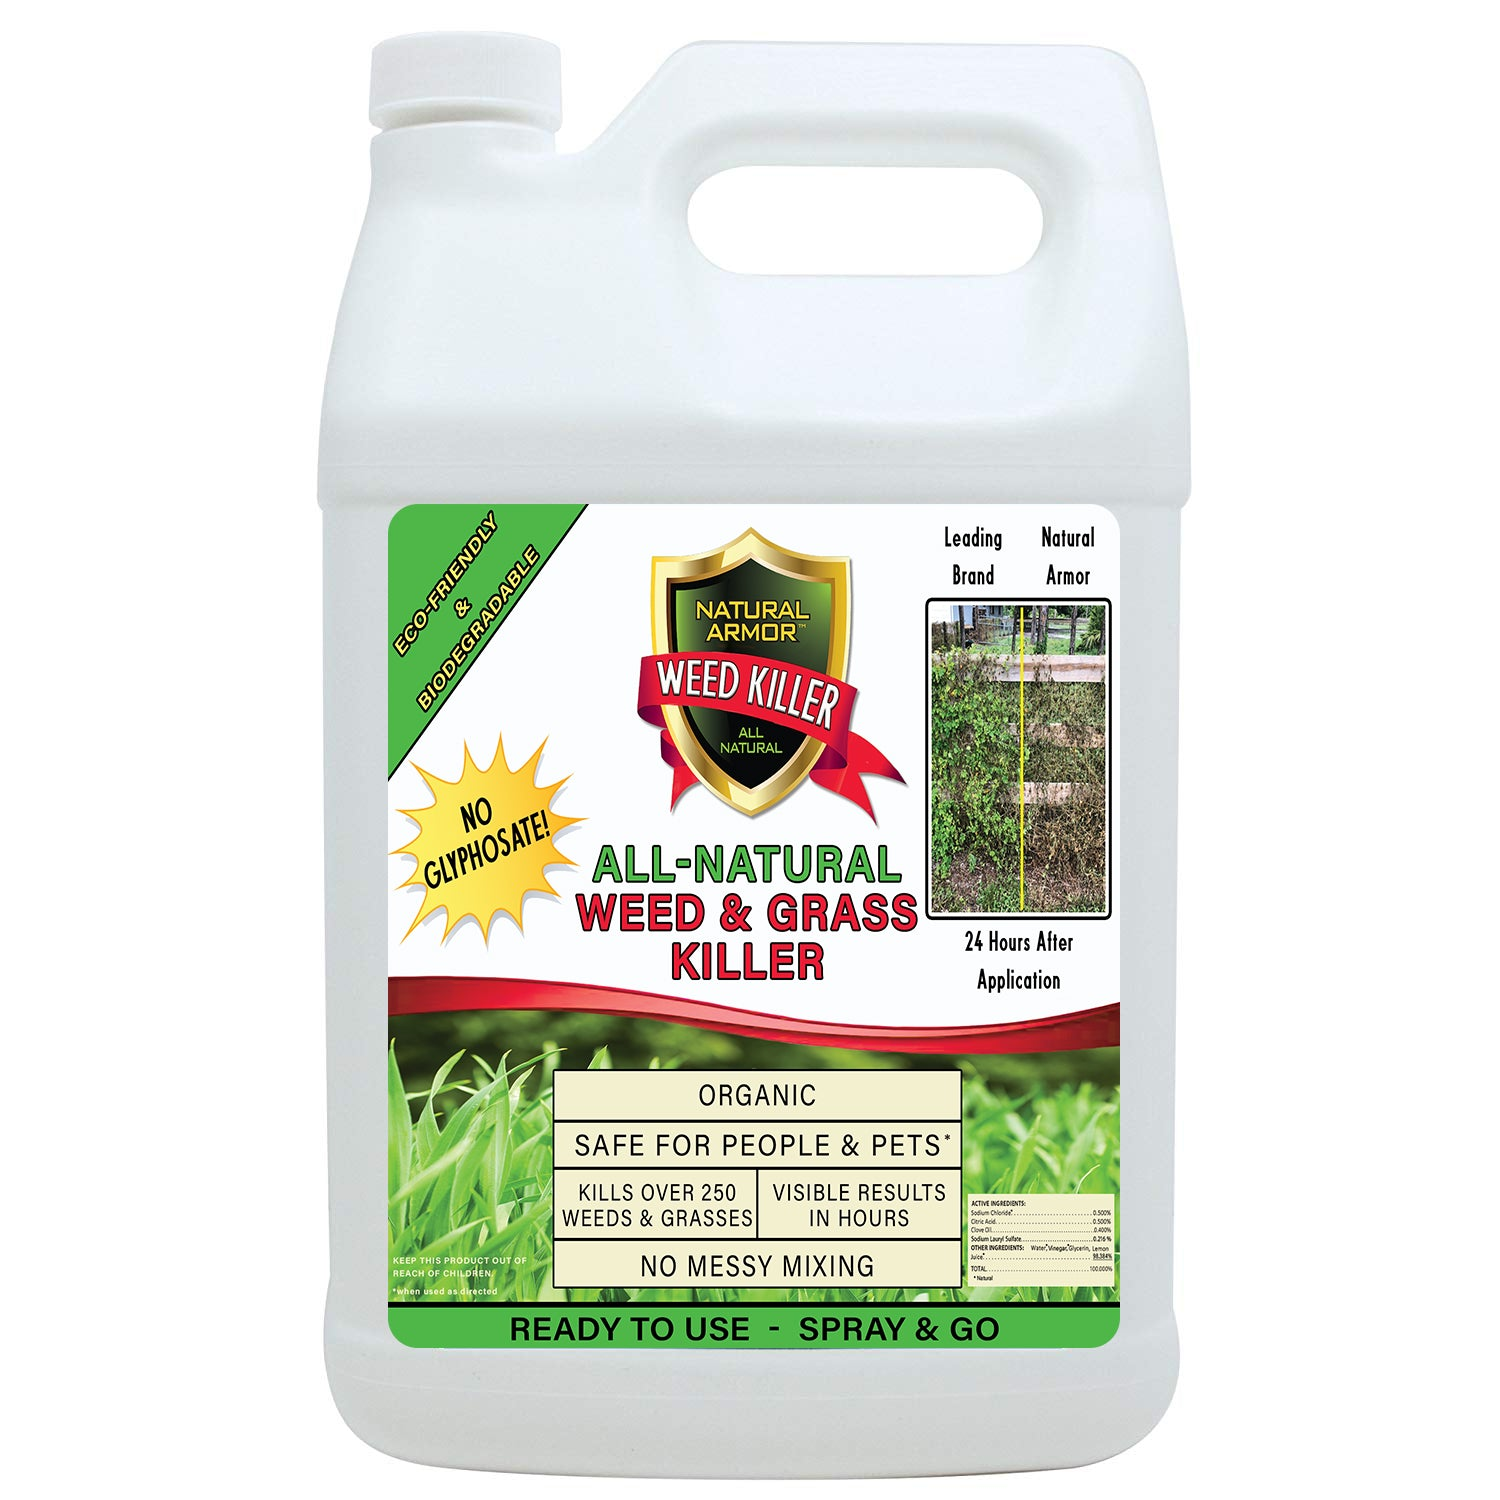 Natural Armor All-Natural Weed Killer - GALLON Refill (128 oz.)